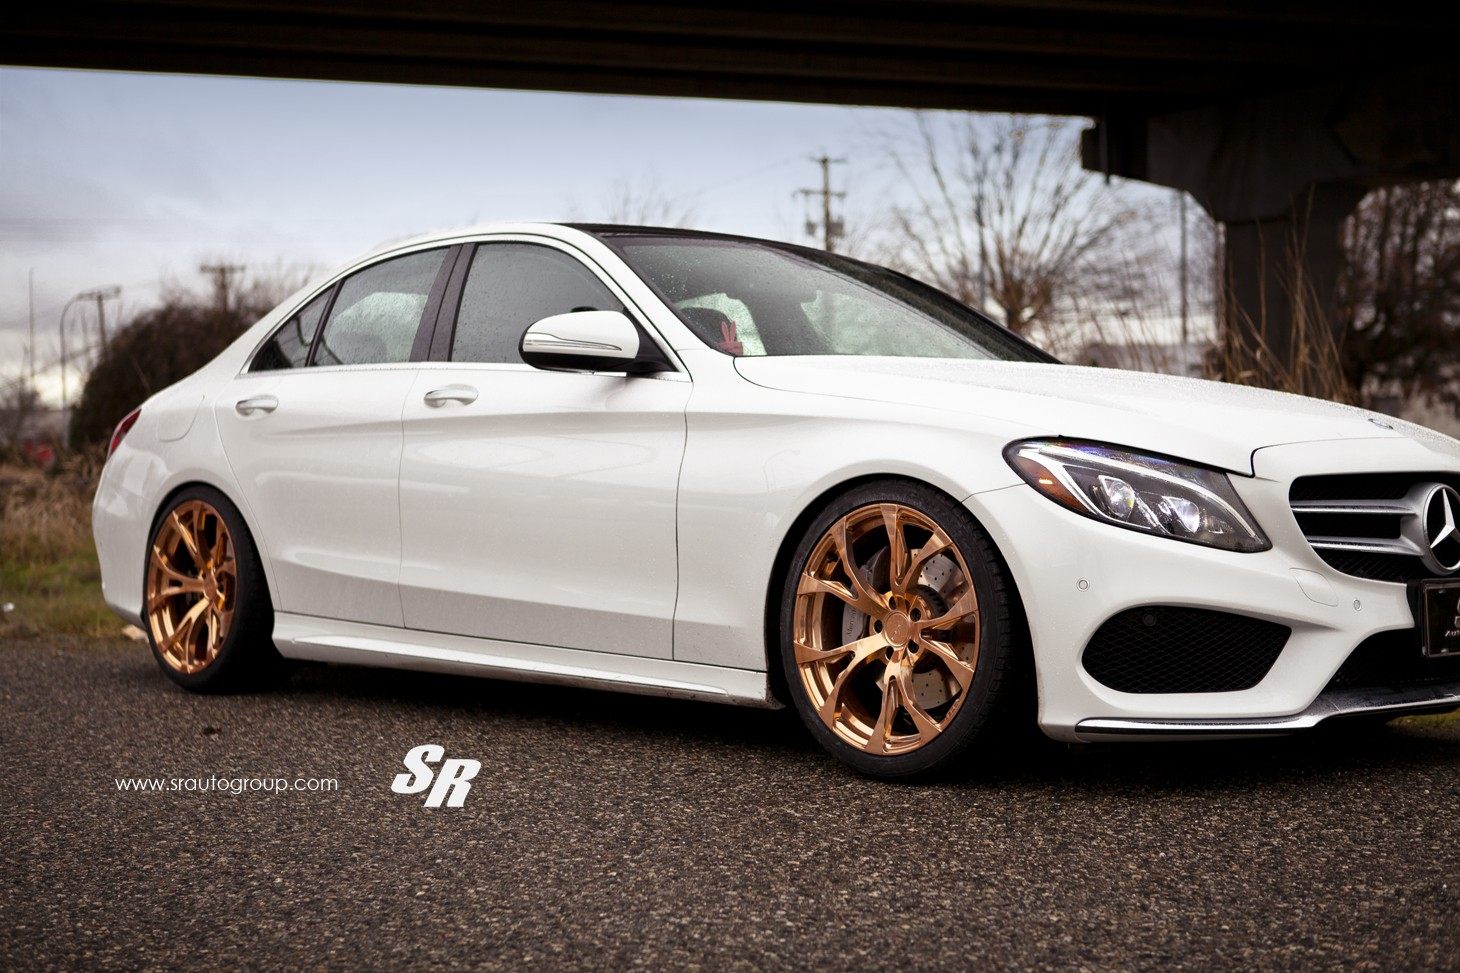 2015 mercedes c300 gets gold pur wheels shows its rich. Black Bedroom Furniture Sets. Home Design Ideas